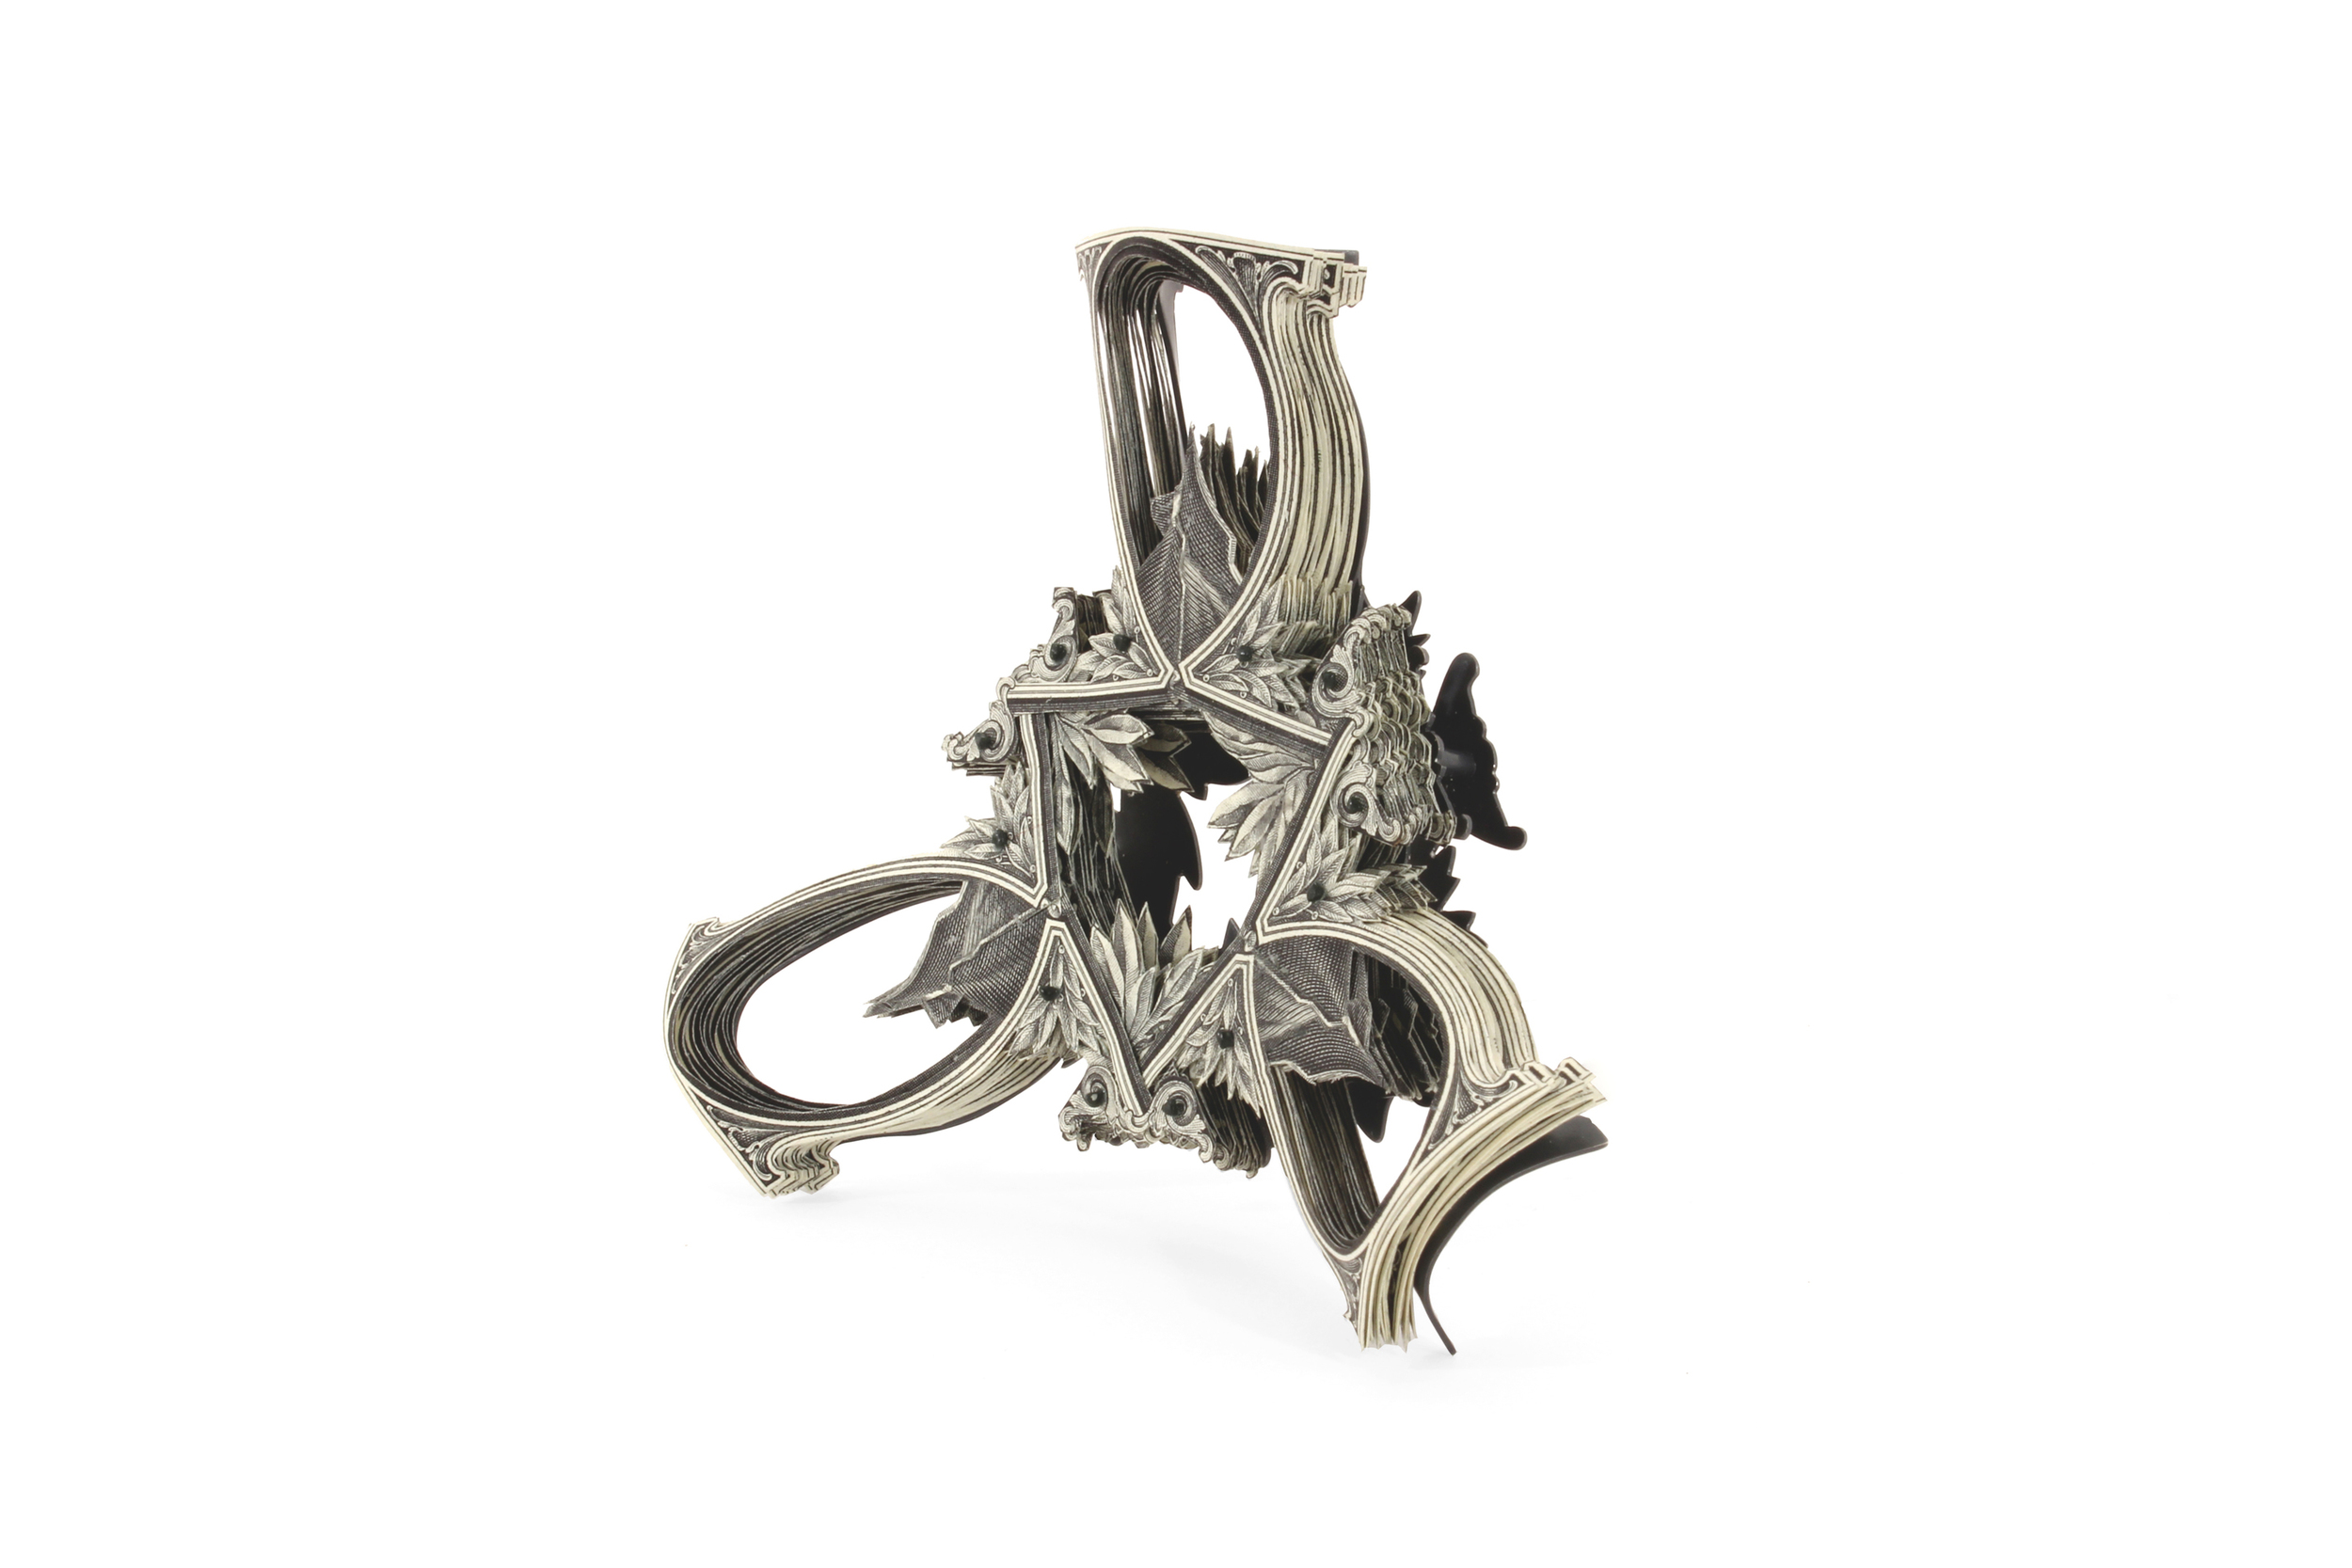 $90.00 Currency Converted   |  Brooch Backside  |  US Dollars, Monofilament, Silver, and Surgical Steel  |  2014  |  Private Collection  |  1/1